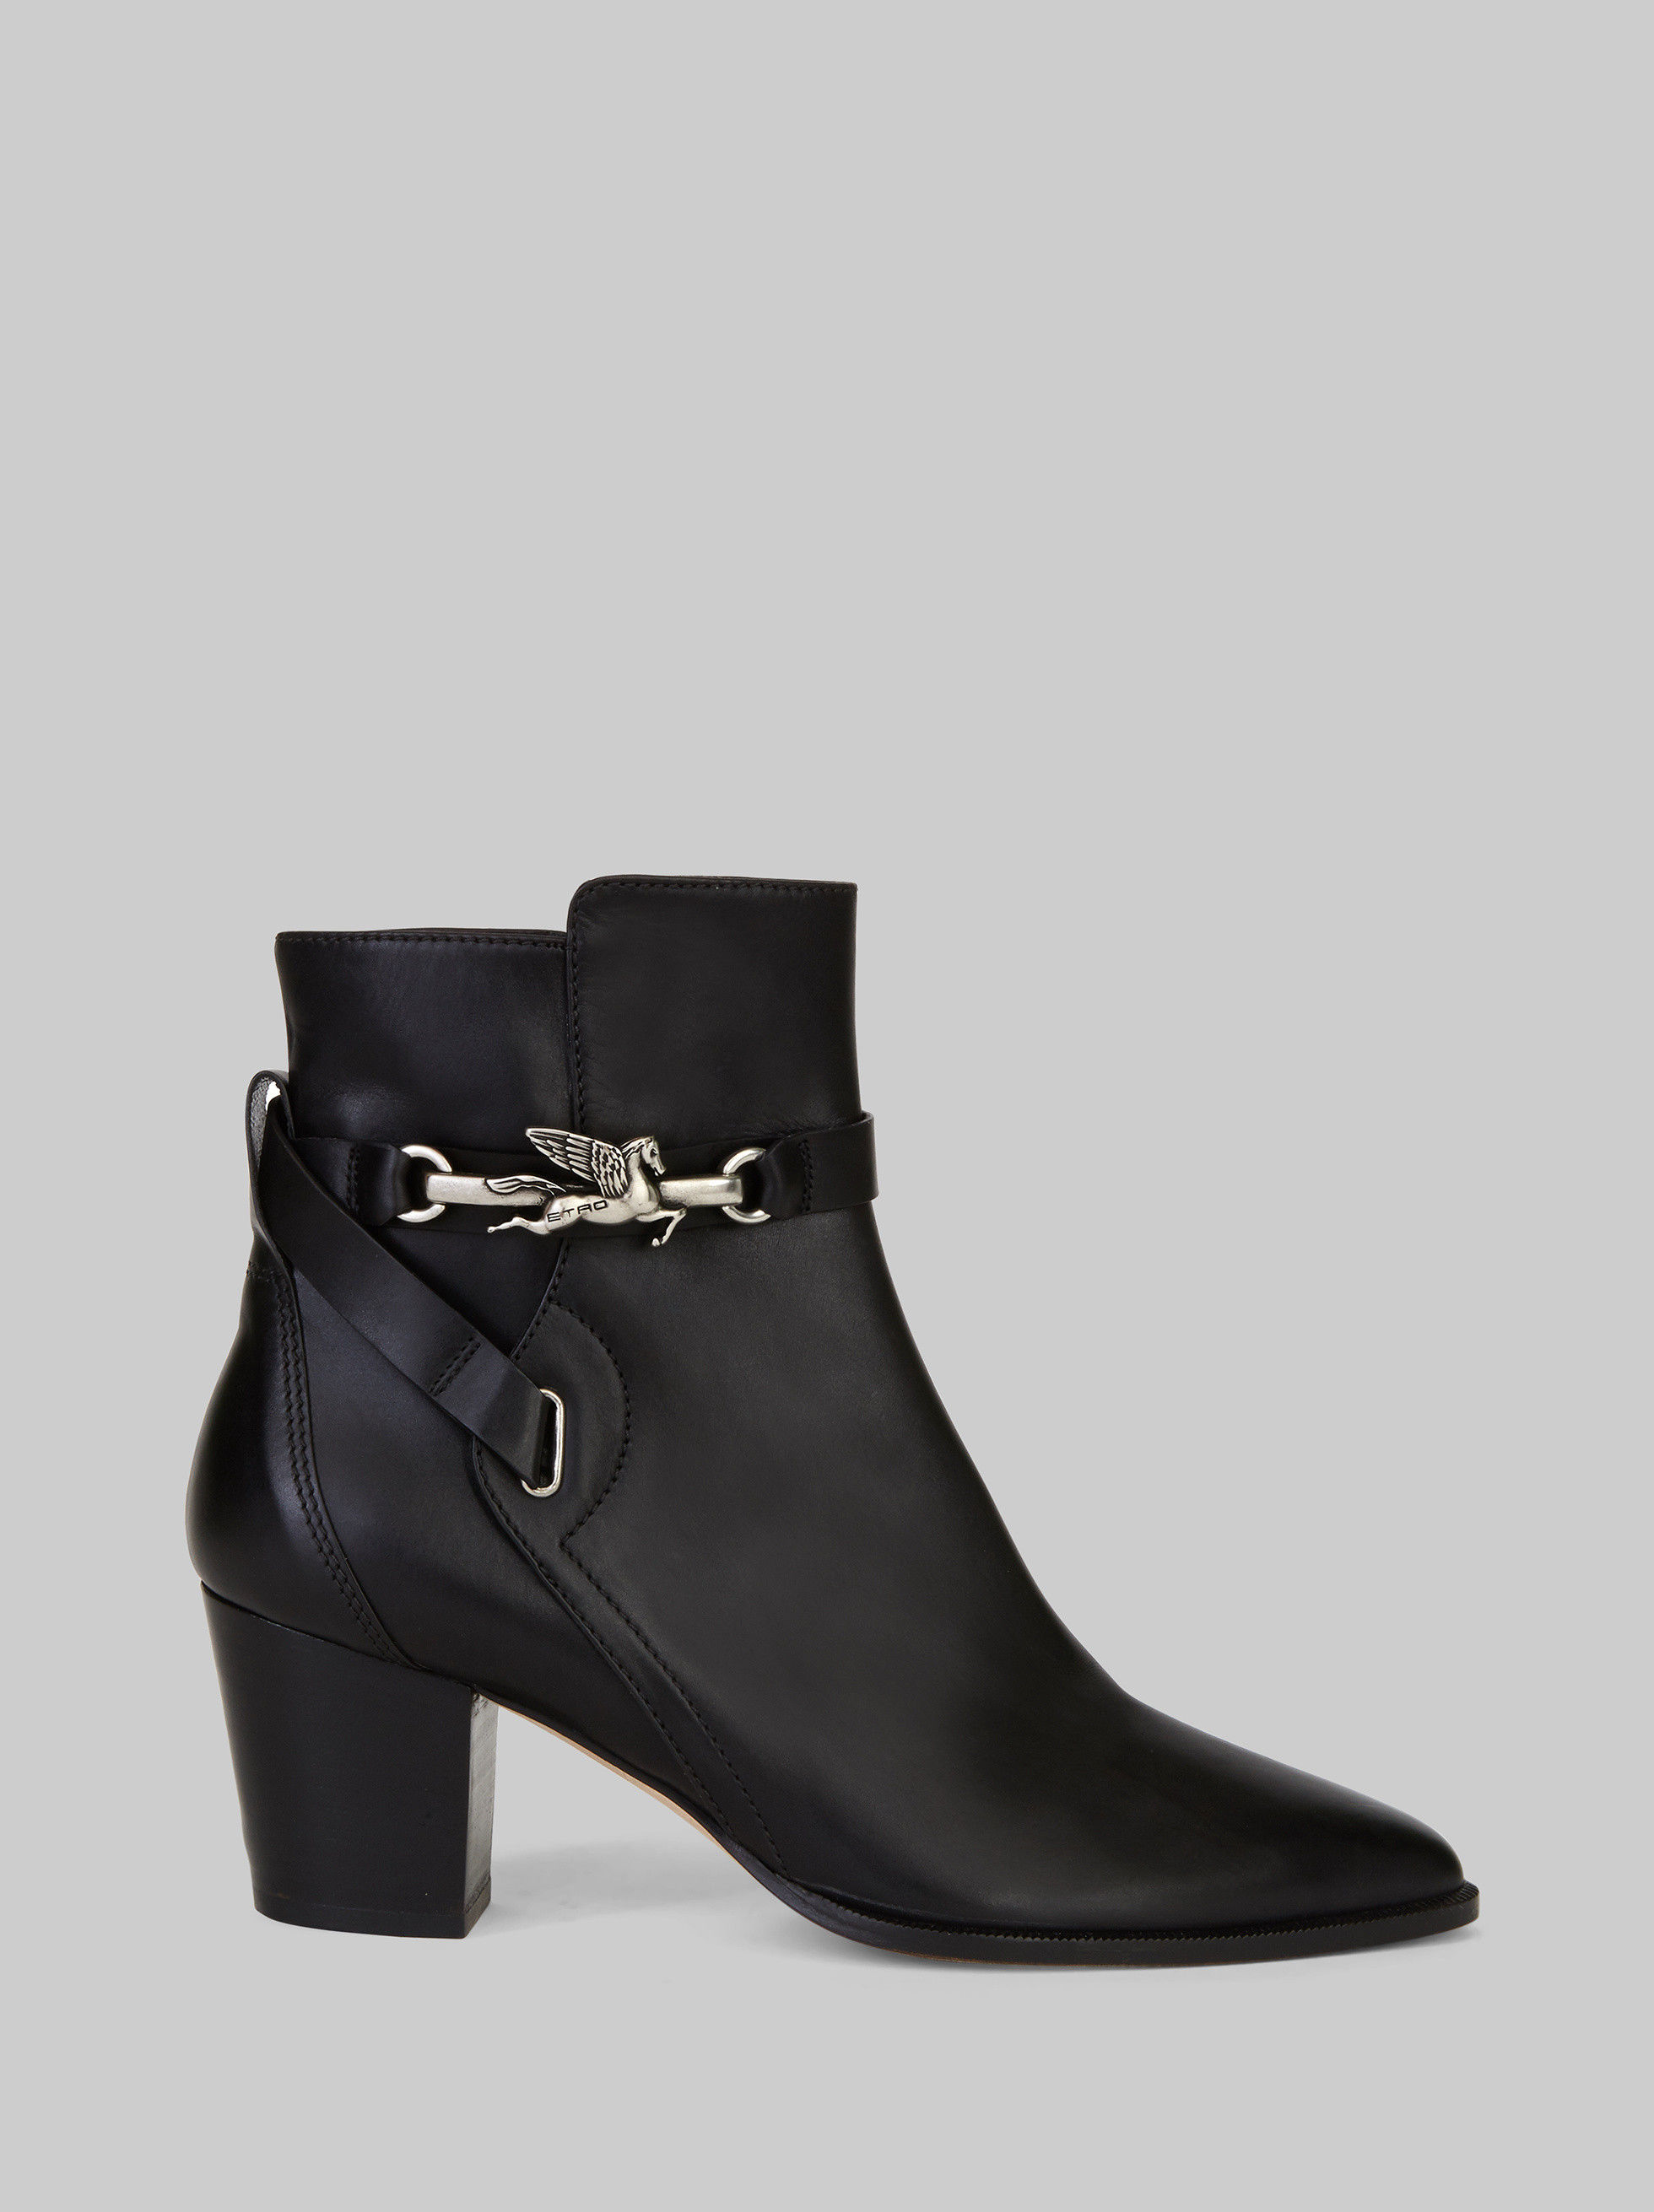 LEATHER ANKLE BOOTS WITH PEGASO